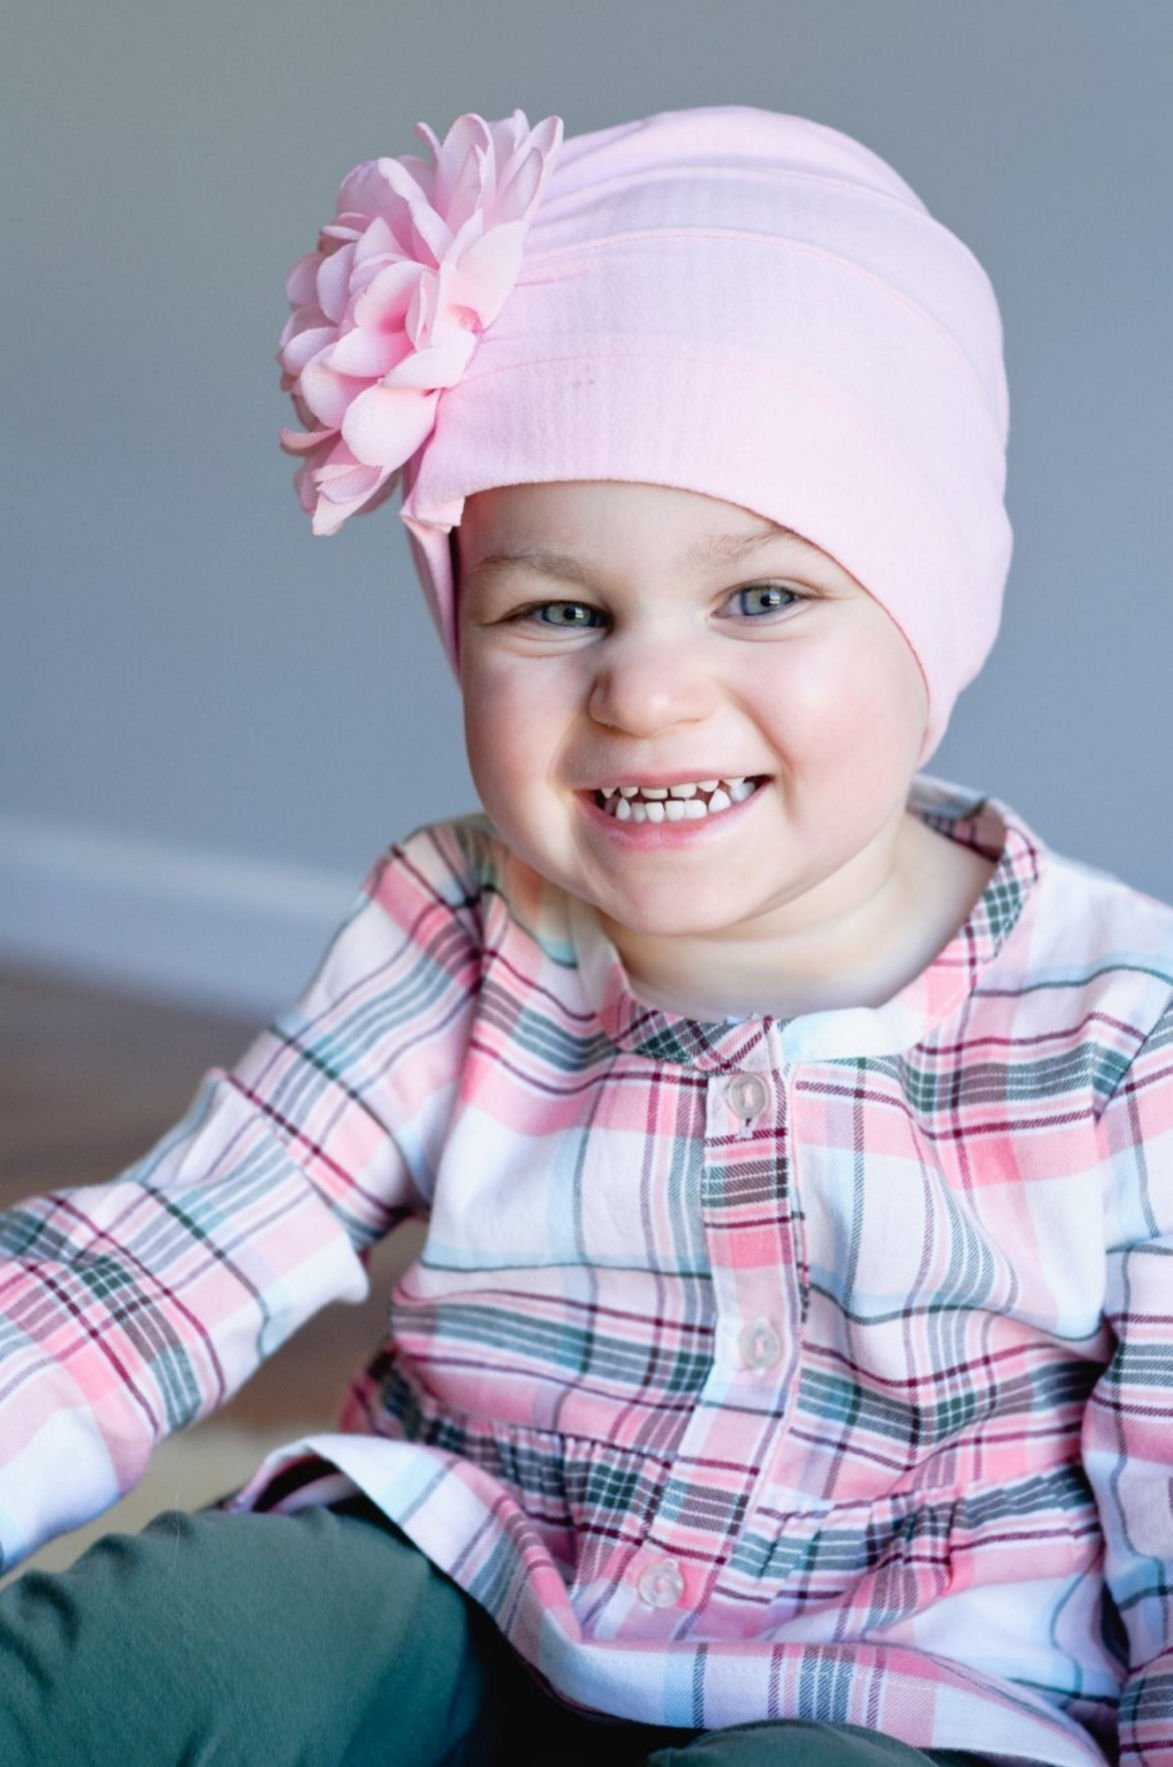 Fundraiser set to help 'Natalie the Brave'